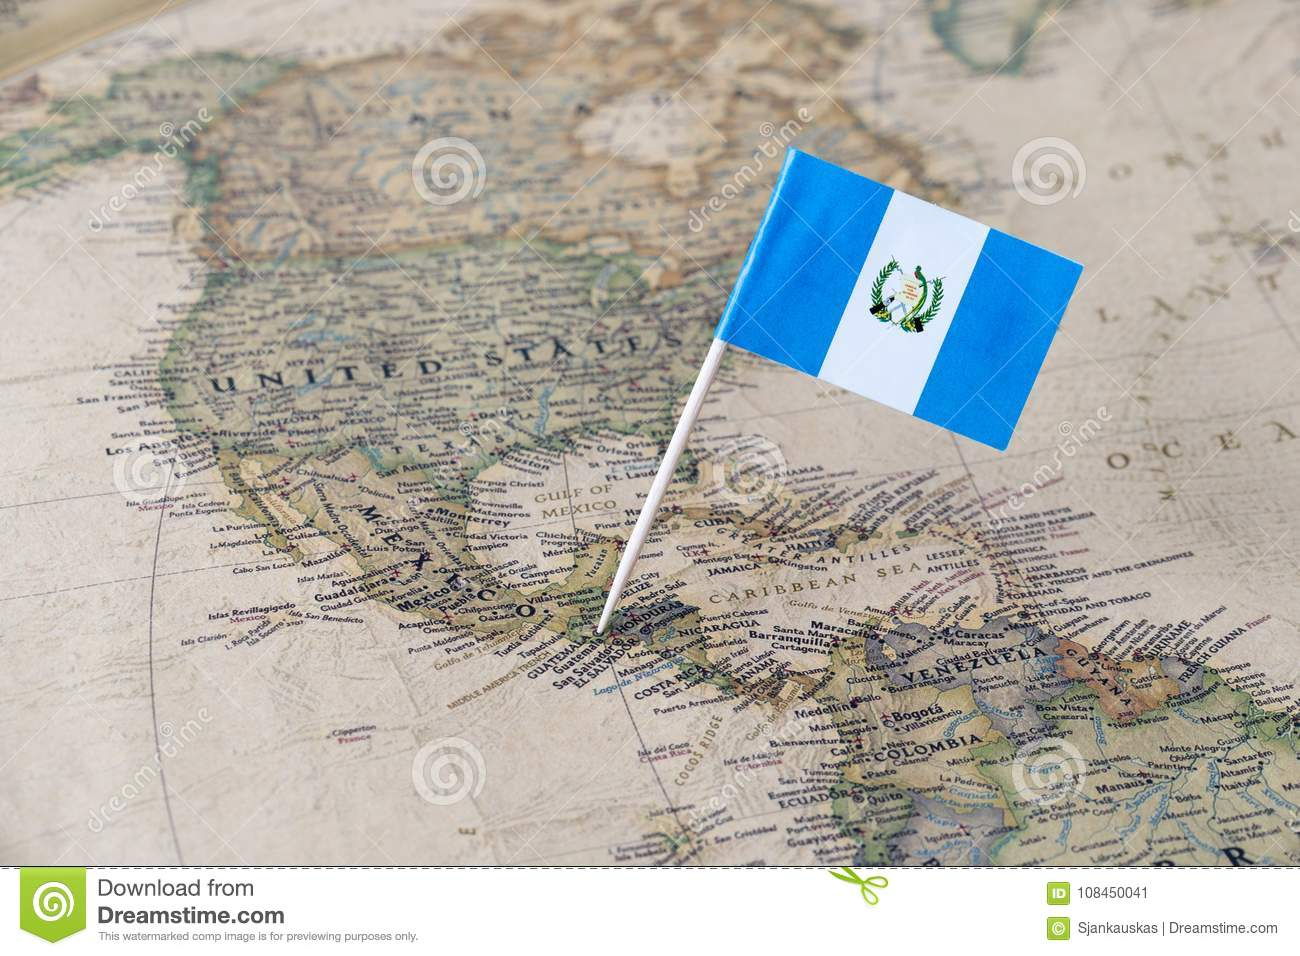 Guatemala flag pin on map stock image. Image of cities - 108450041